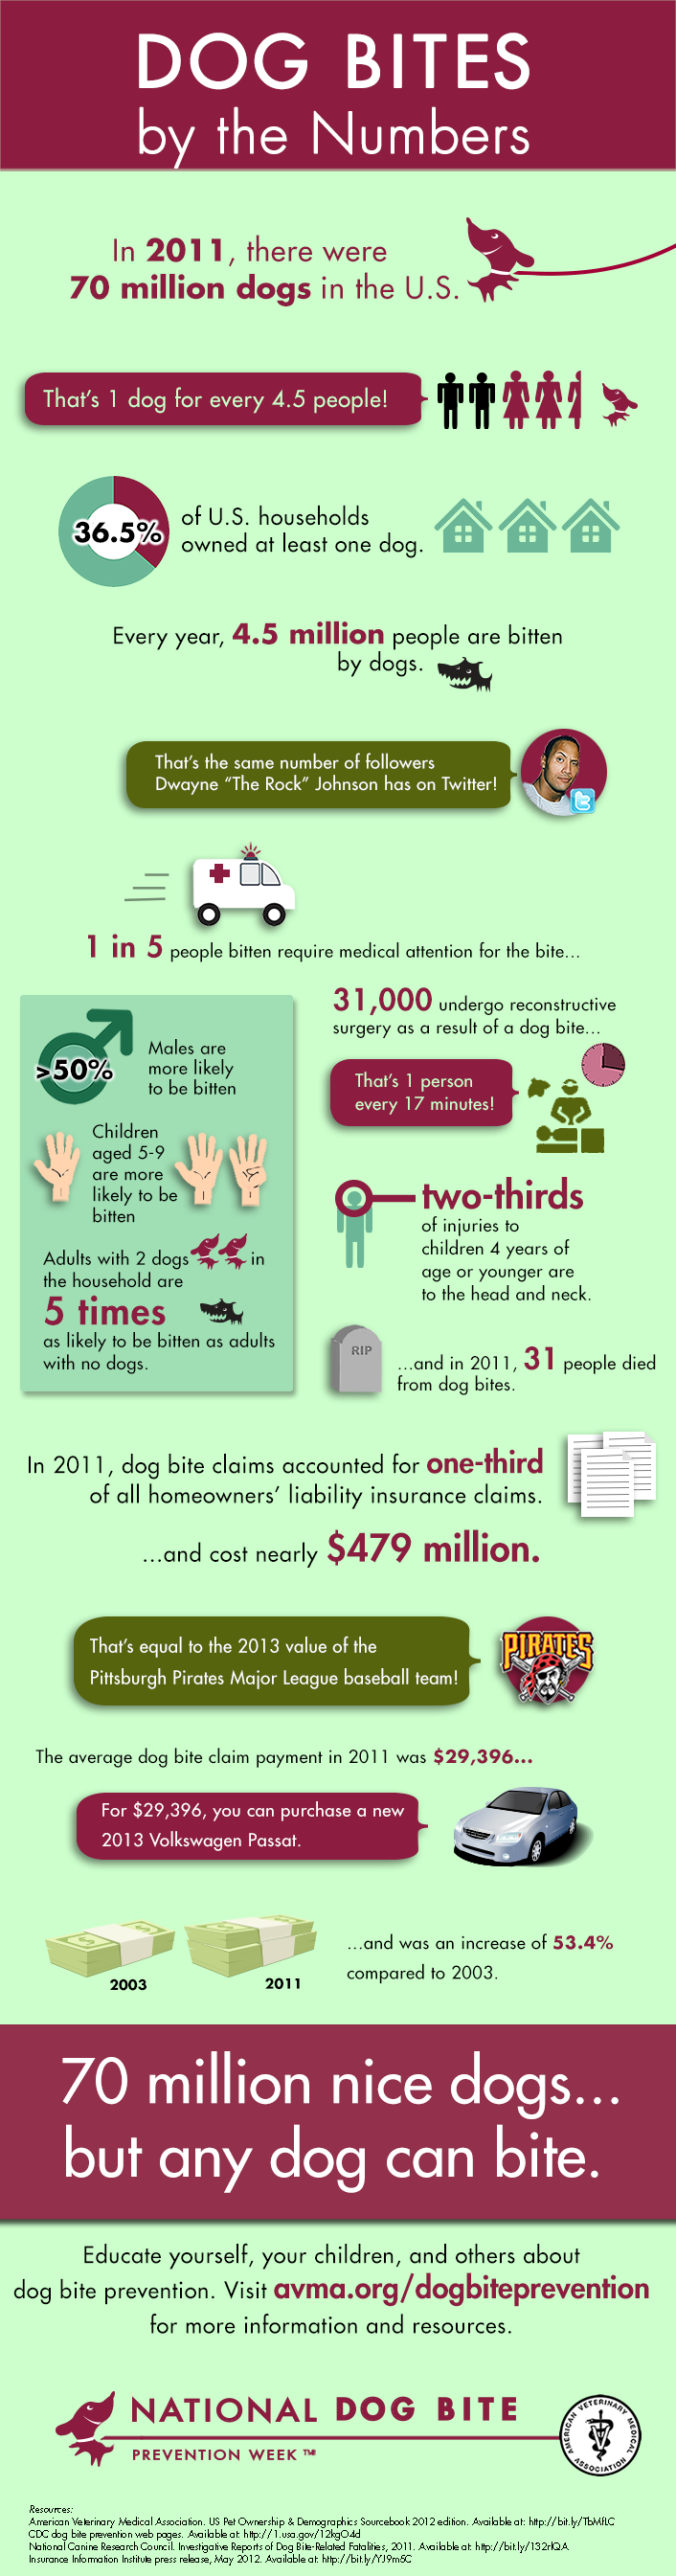 Dog Bites by the Numbers